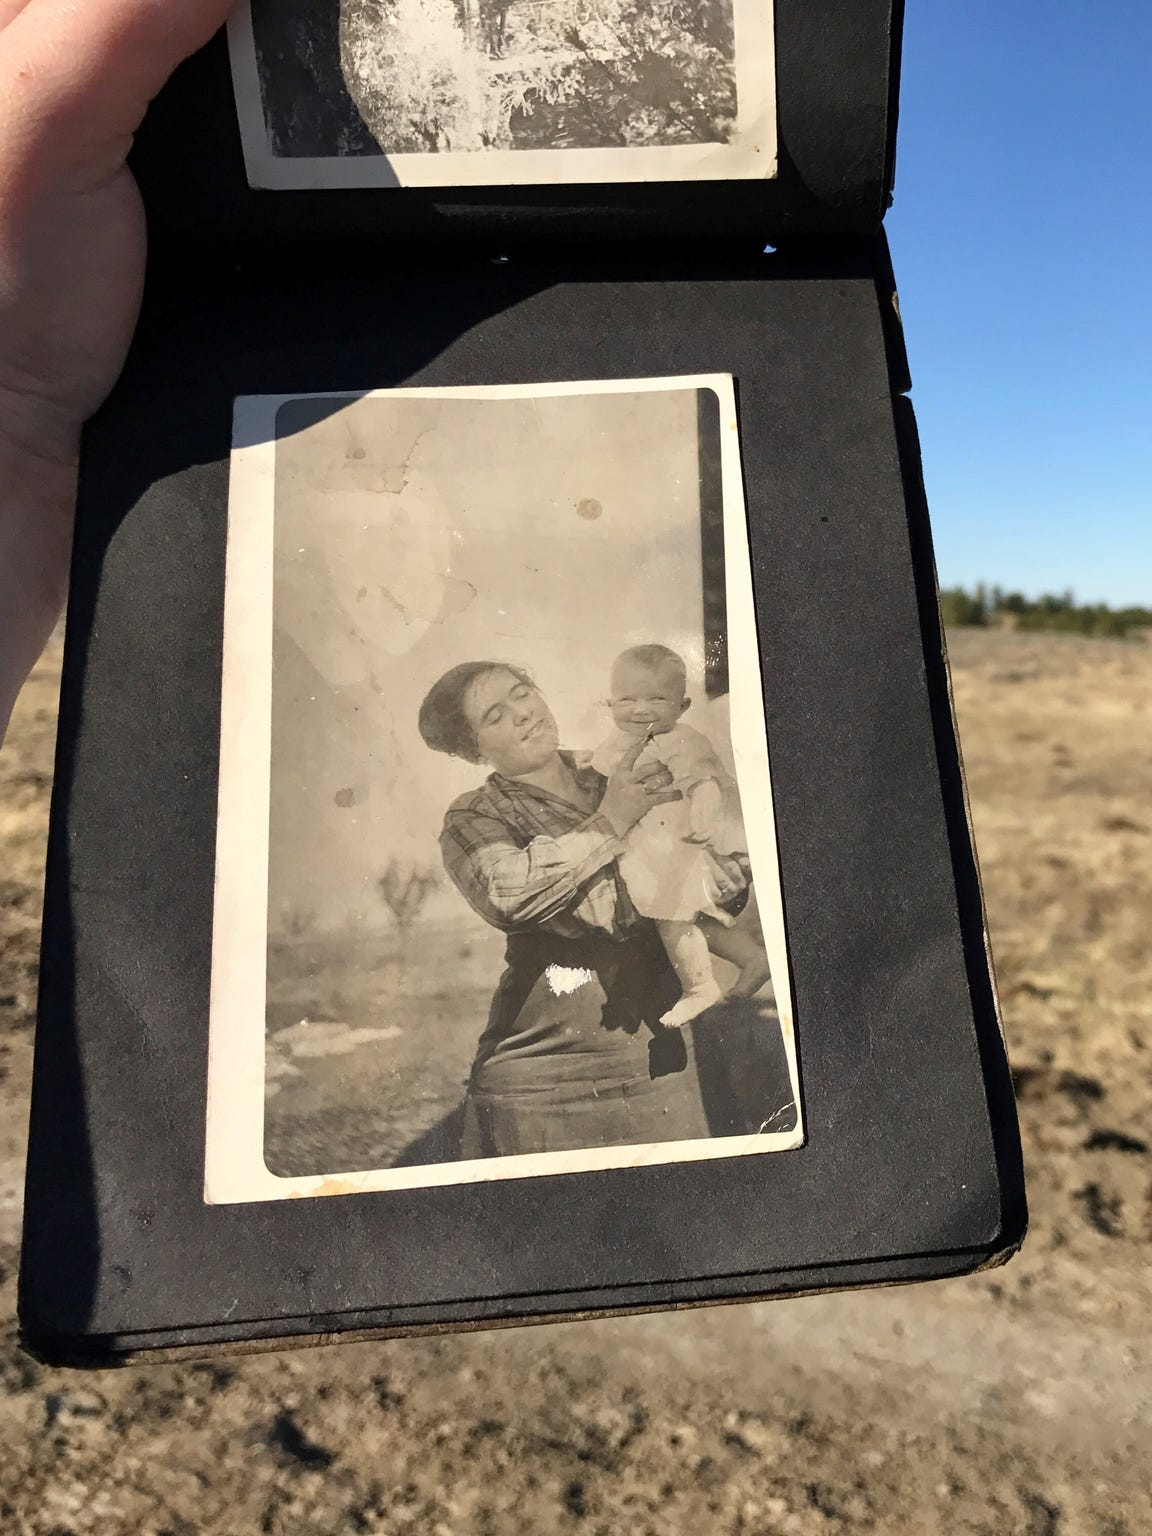 Orra Jones cuddles one of her children in a photo taken more than 90 years ago on a homestead in the Upper Missouri Breaks.